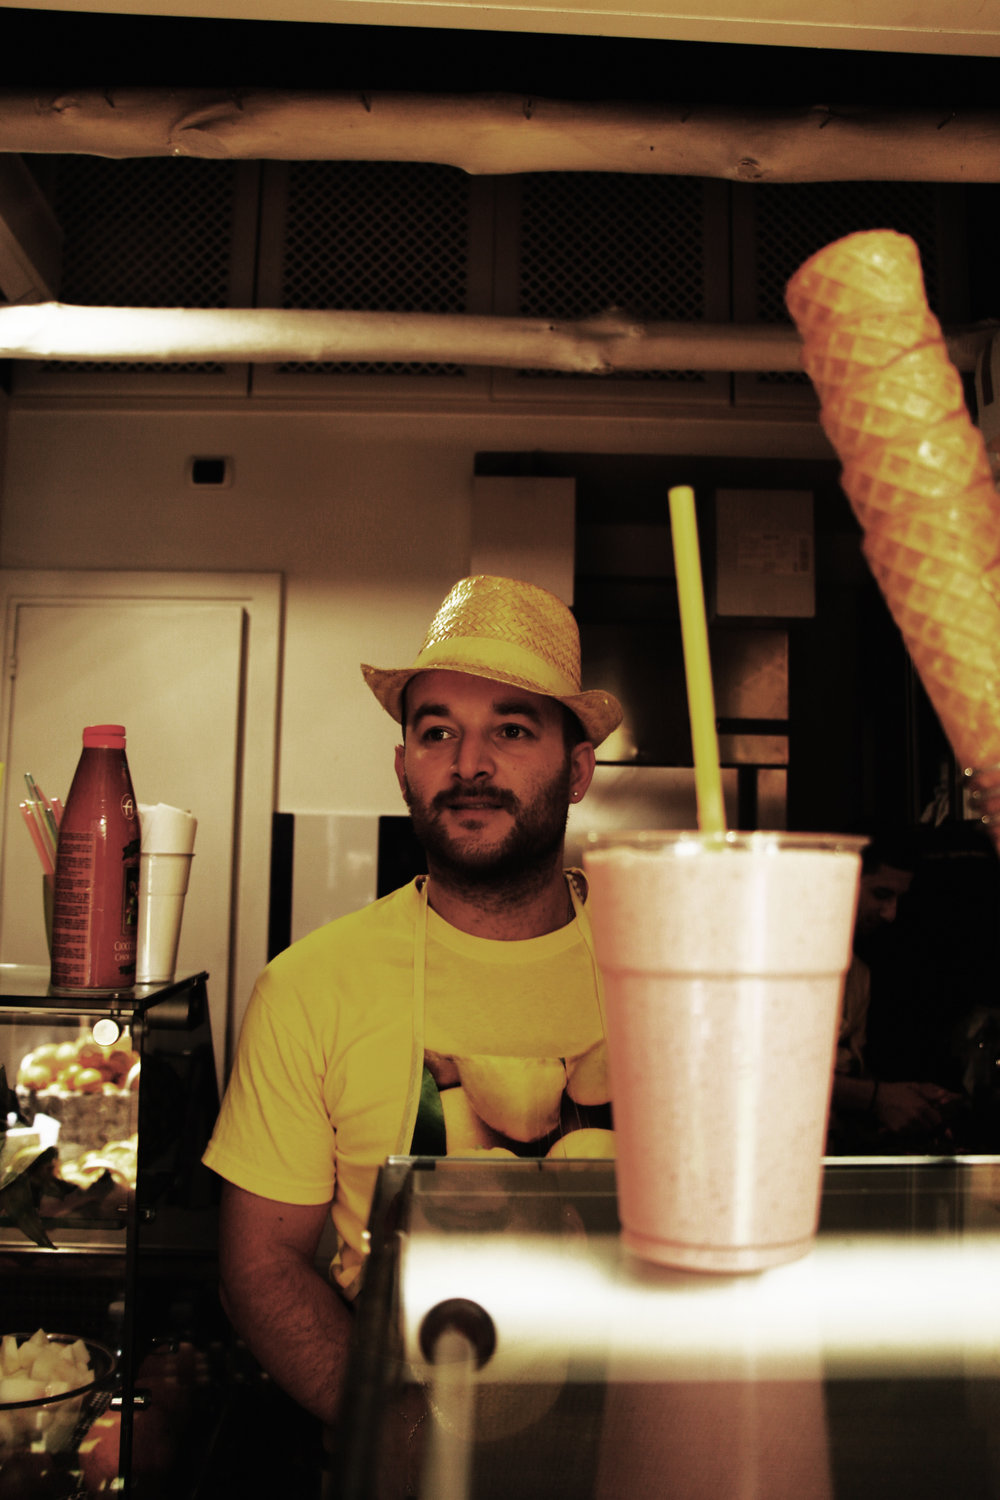 italian smoothie man